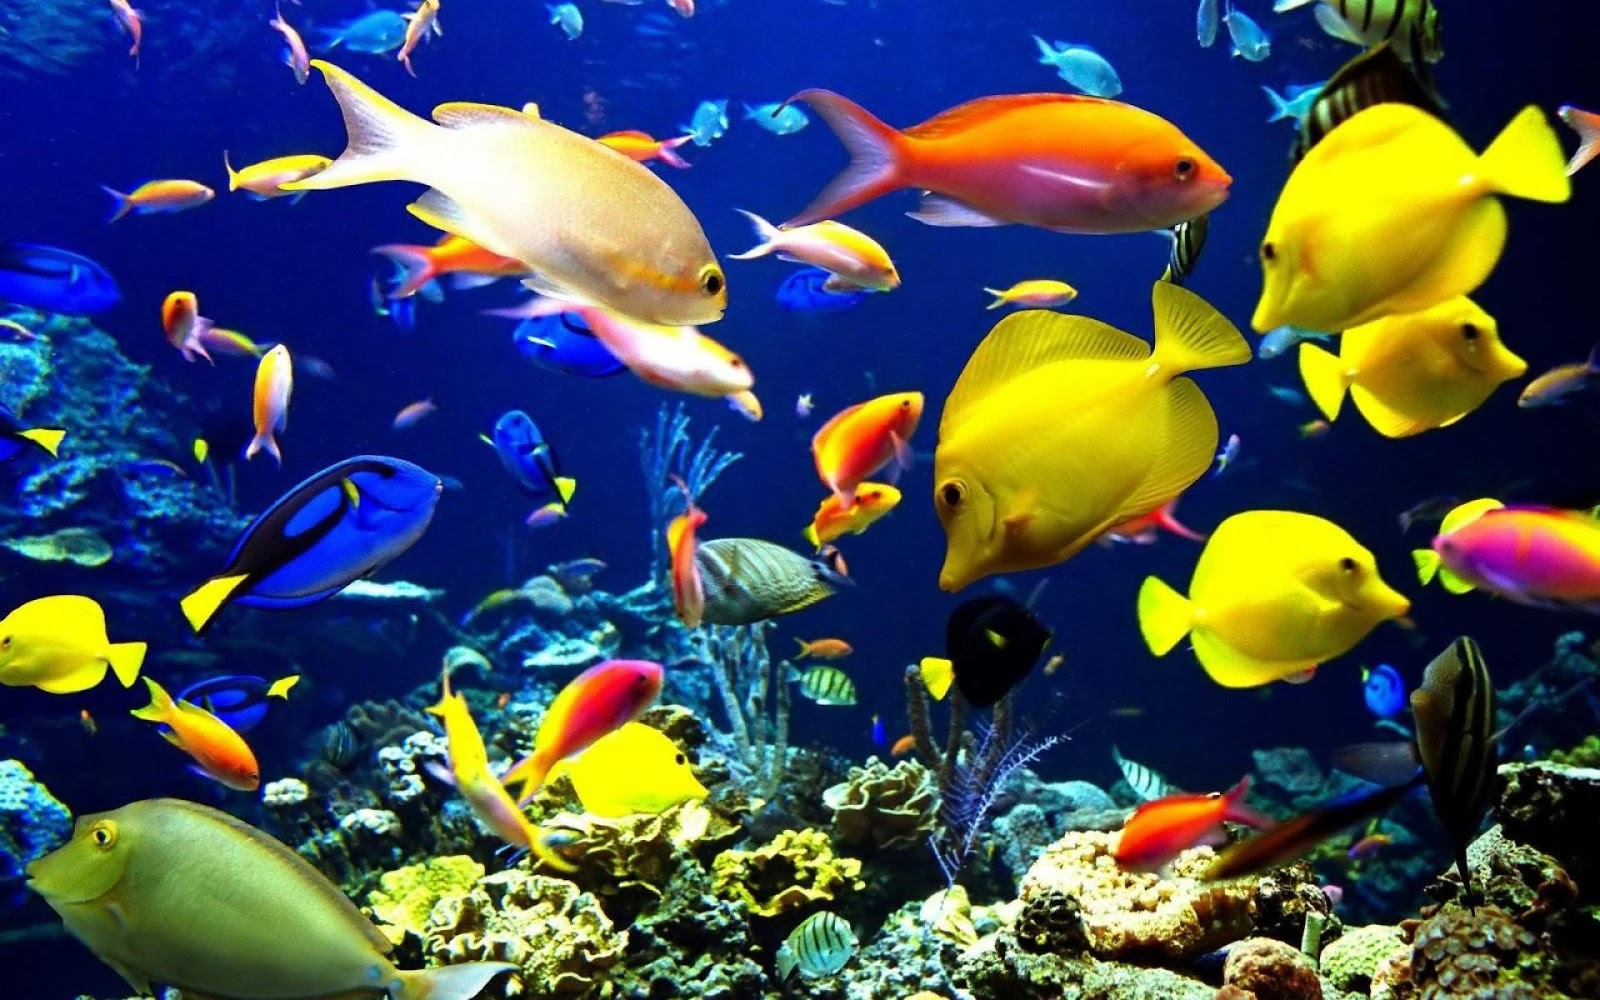 aquarium hd wallpaper - photo #16